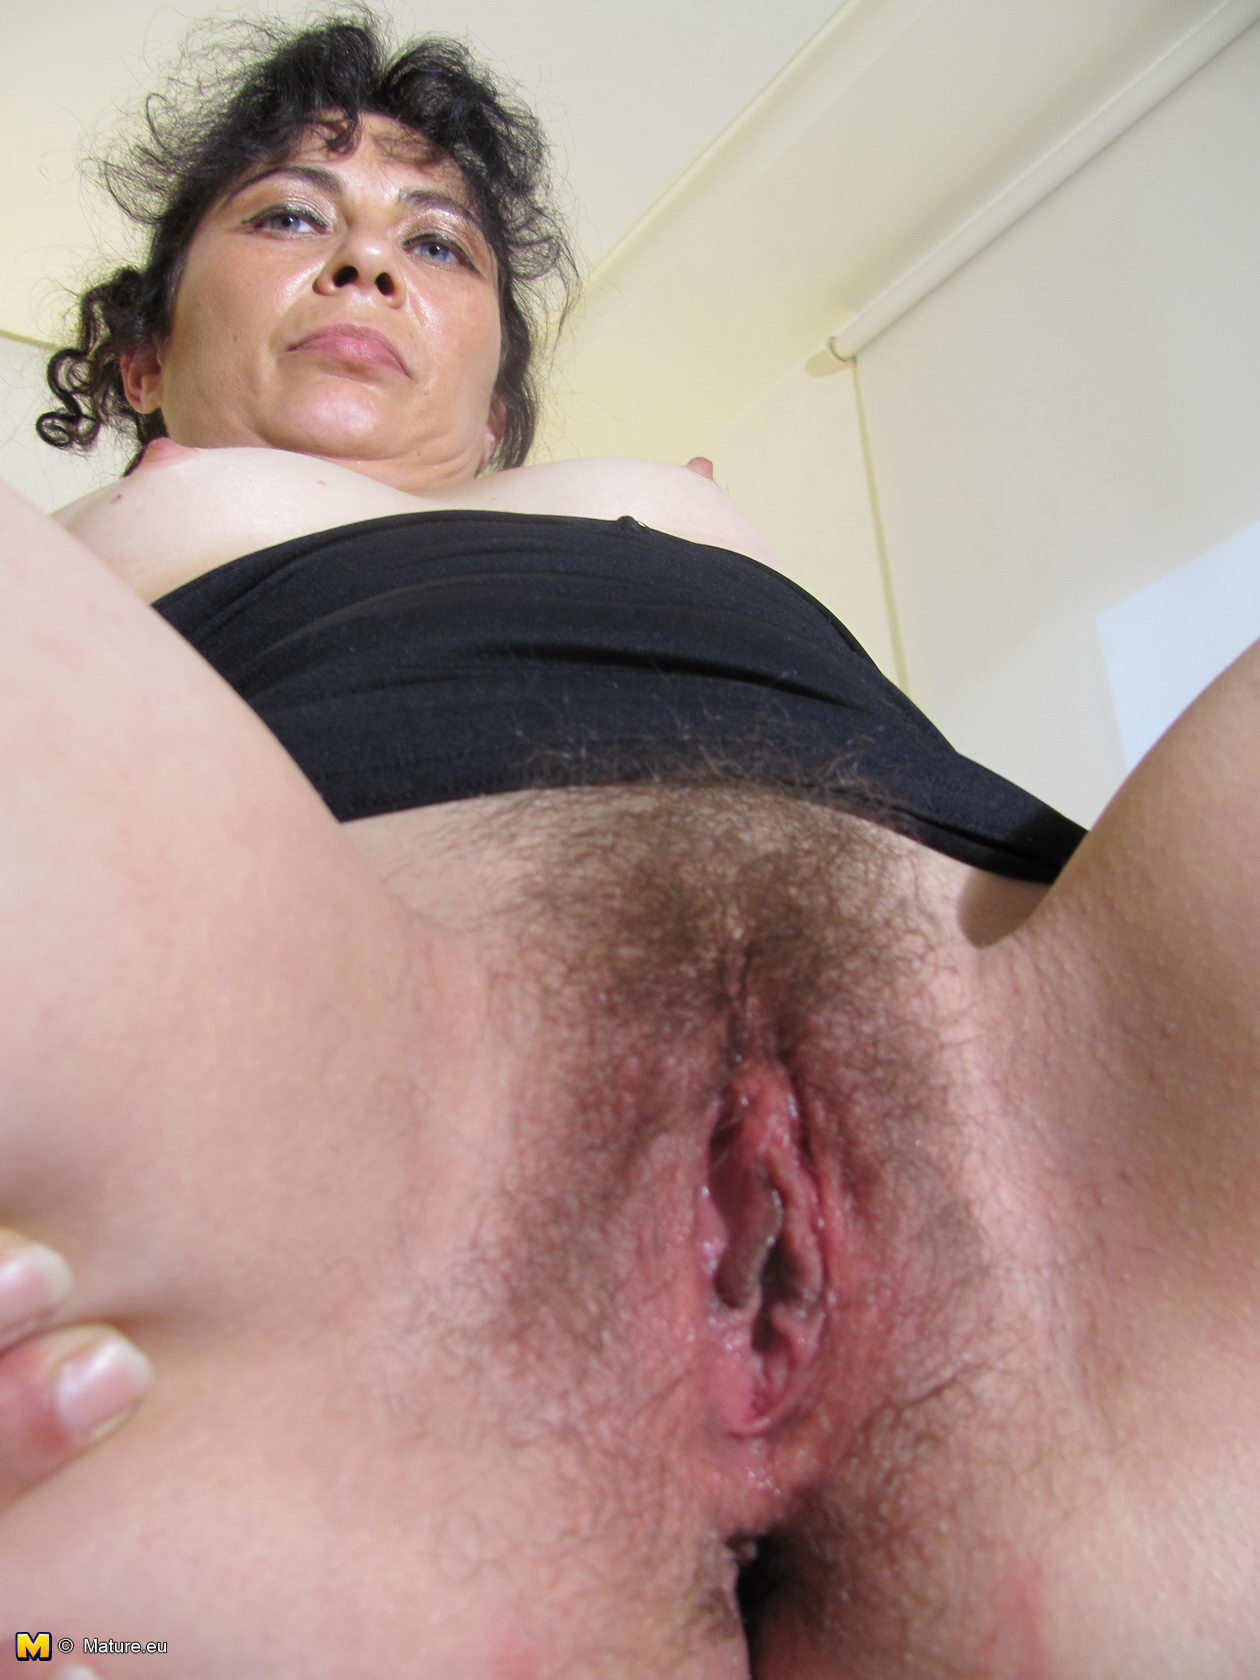 Free mature pussy gallery